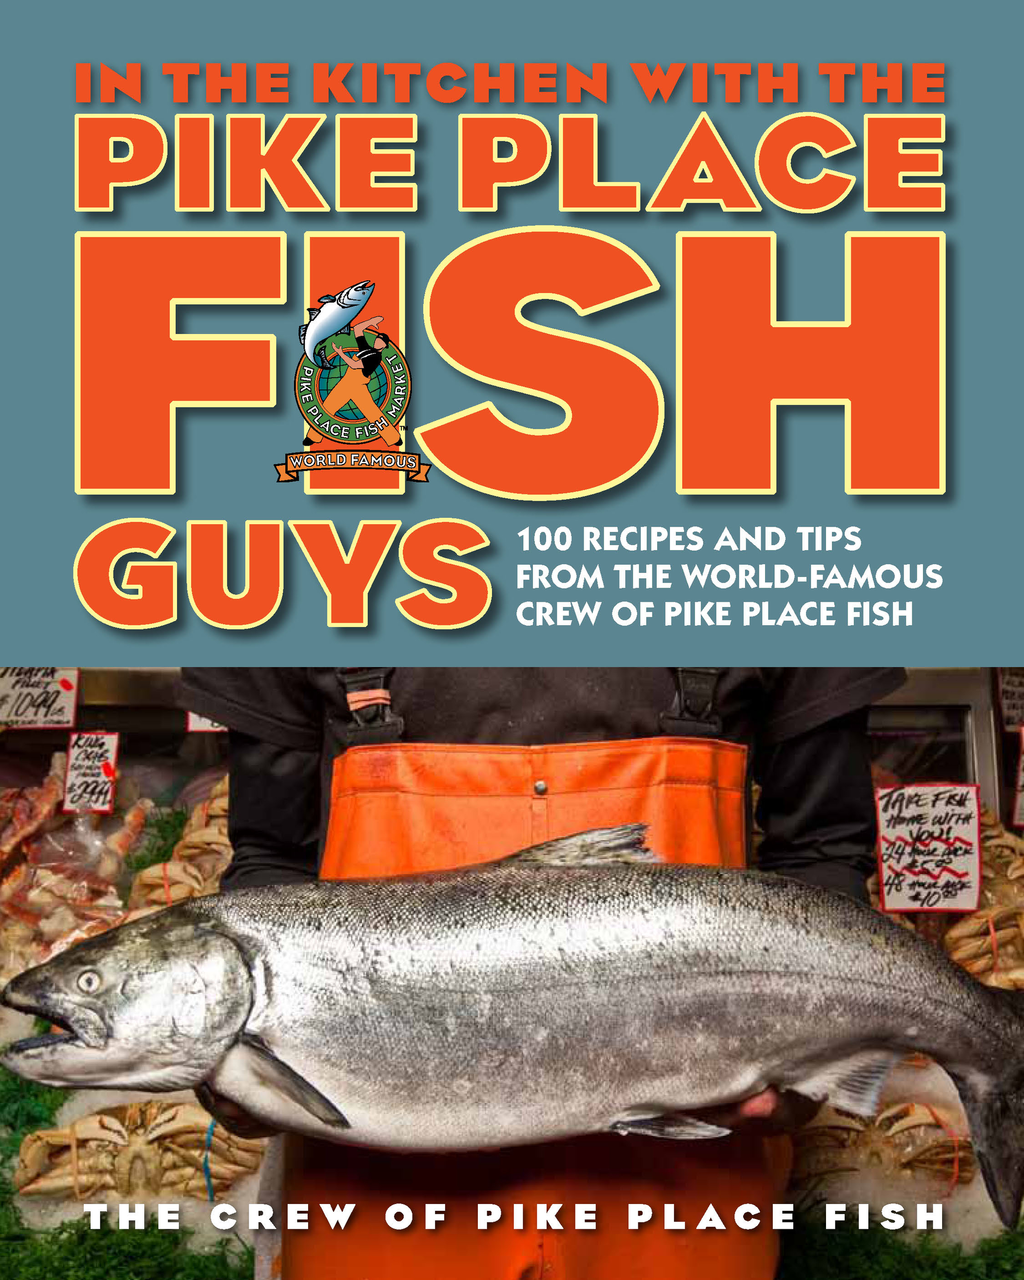 In the Kitchen with the Pike Place Fish Guys 100 Recipes and Tips from the World-Famous Crew of Pike Place Fish